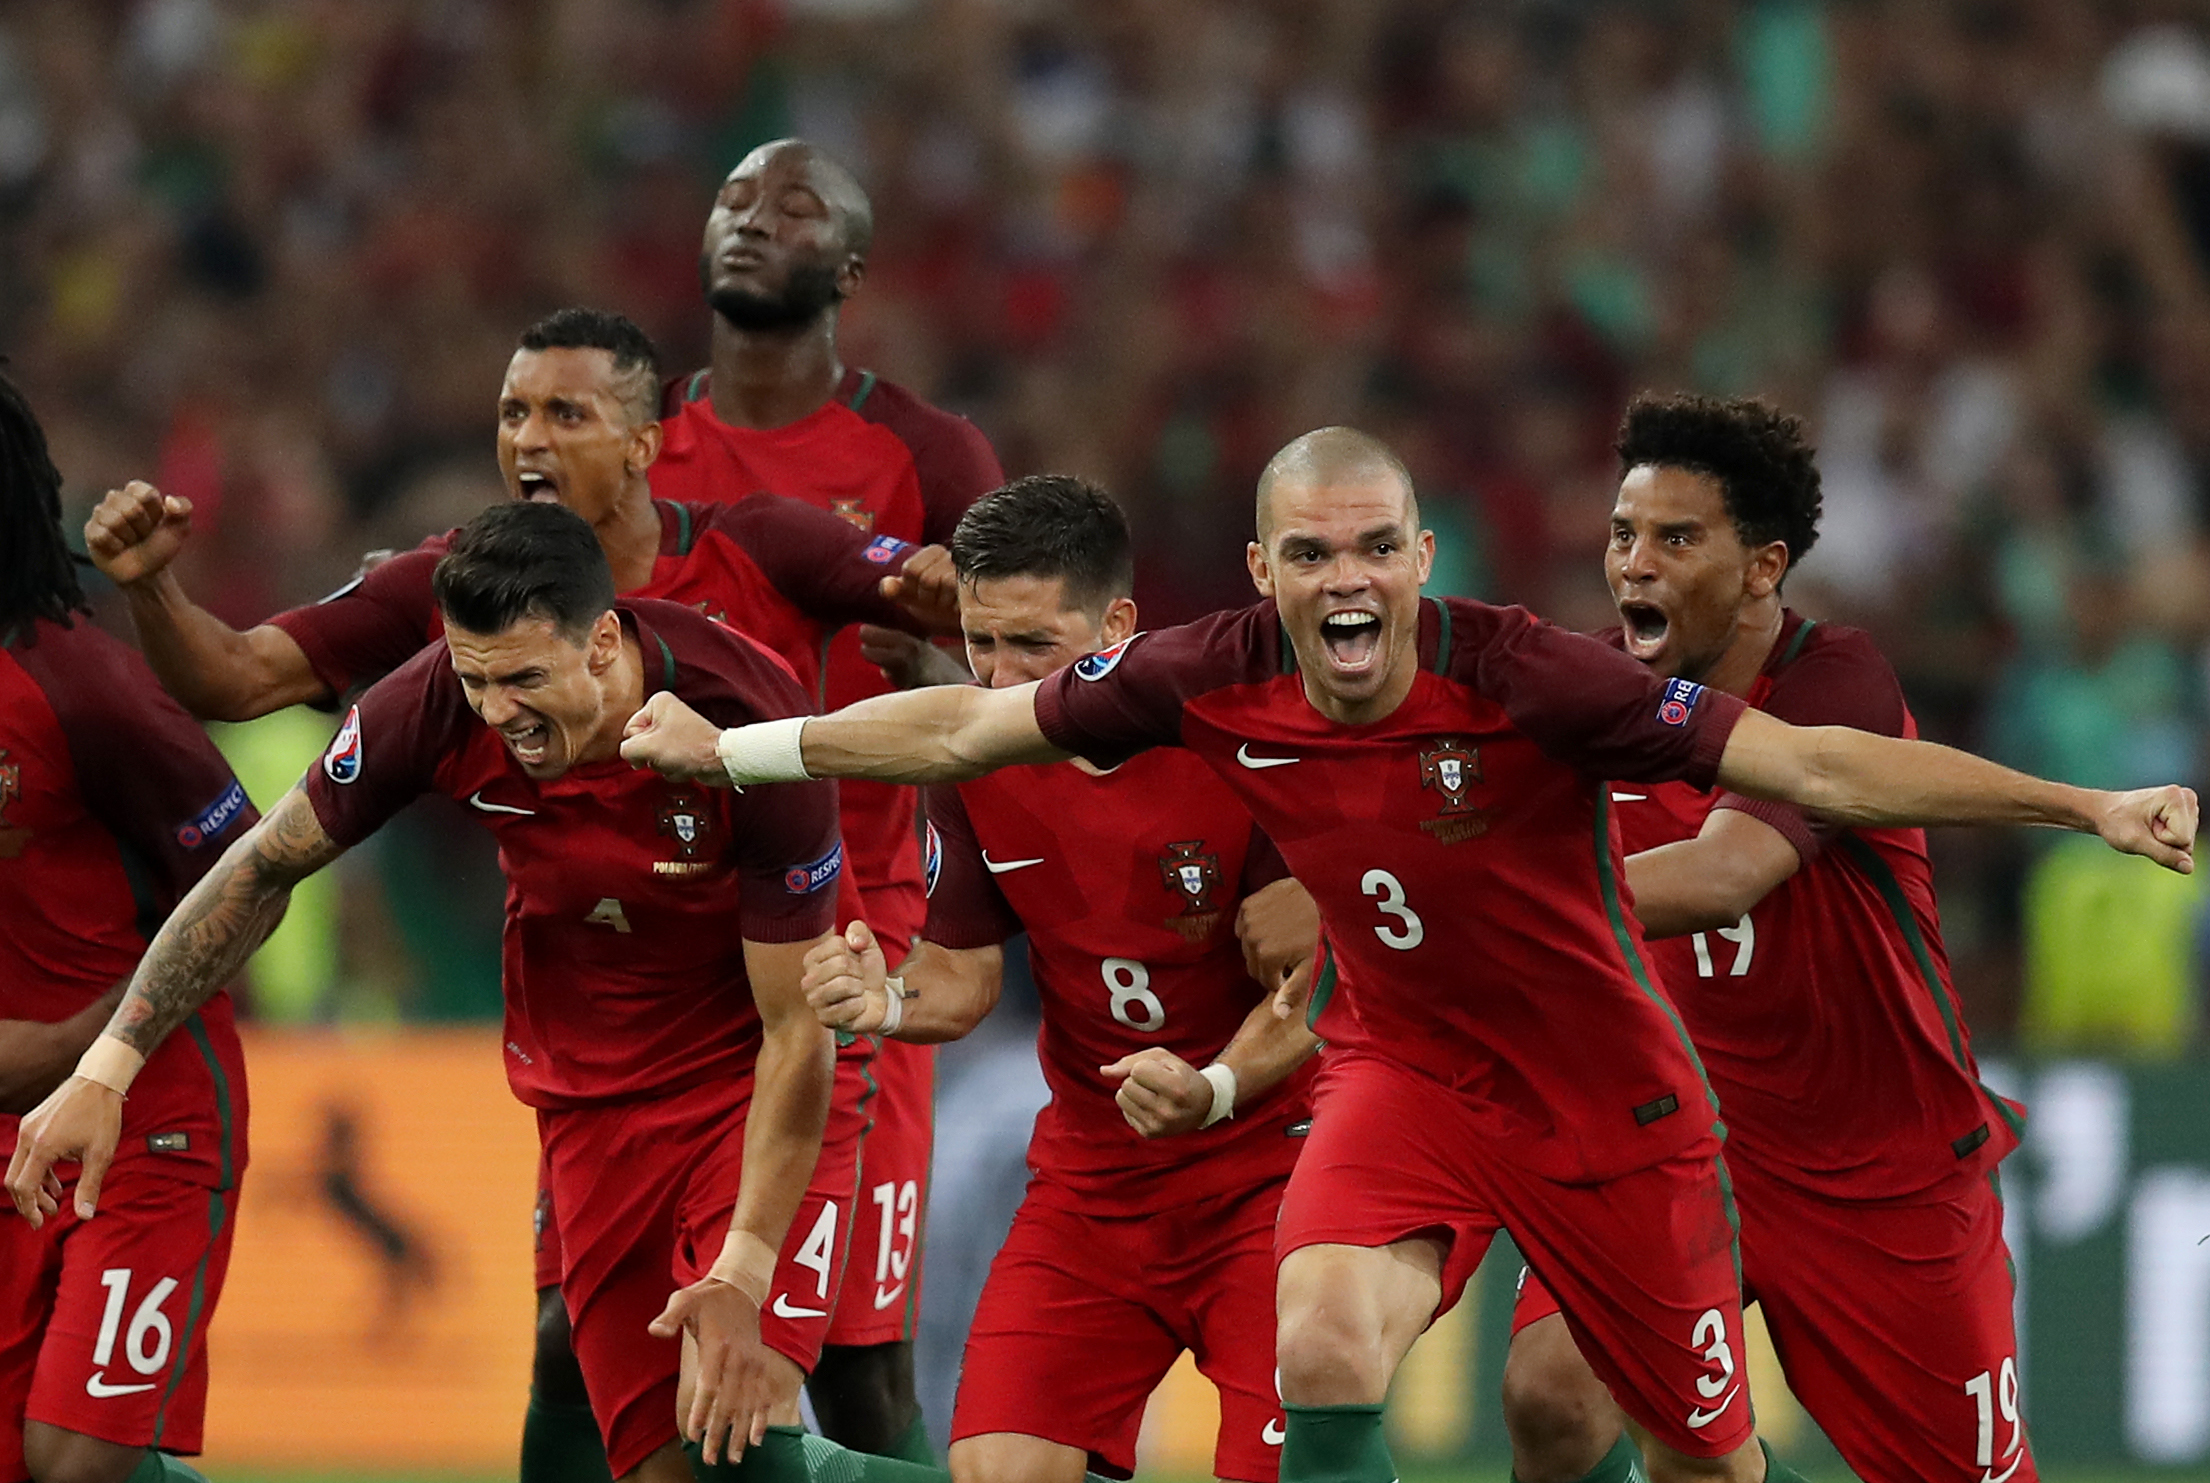 Portugal's players celebrate after winning the Euro 2016 quarter-final football match between Poland and Portugal at the Stade Velodrome in Marseille on June 30, 2016. / AFP PHOTO / Valery HACHE